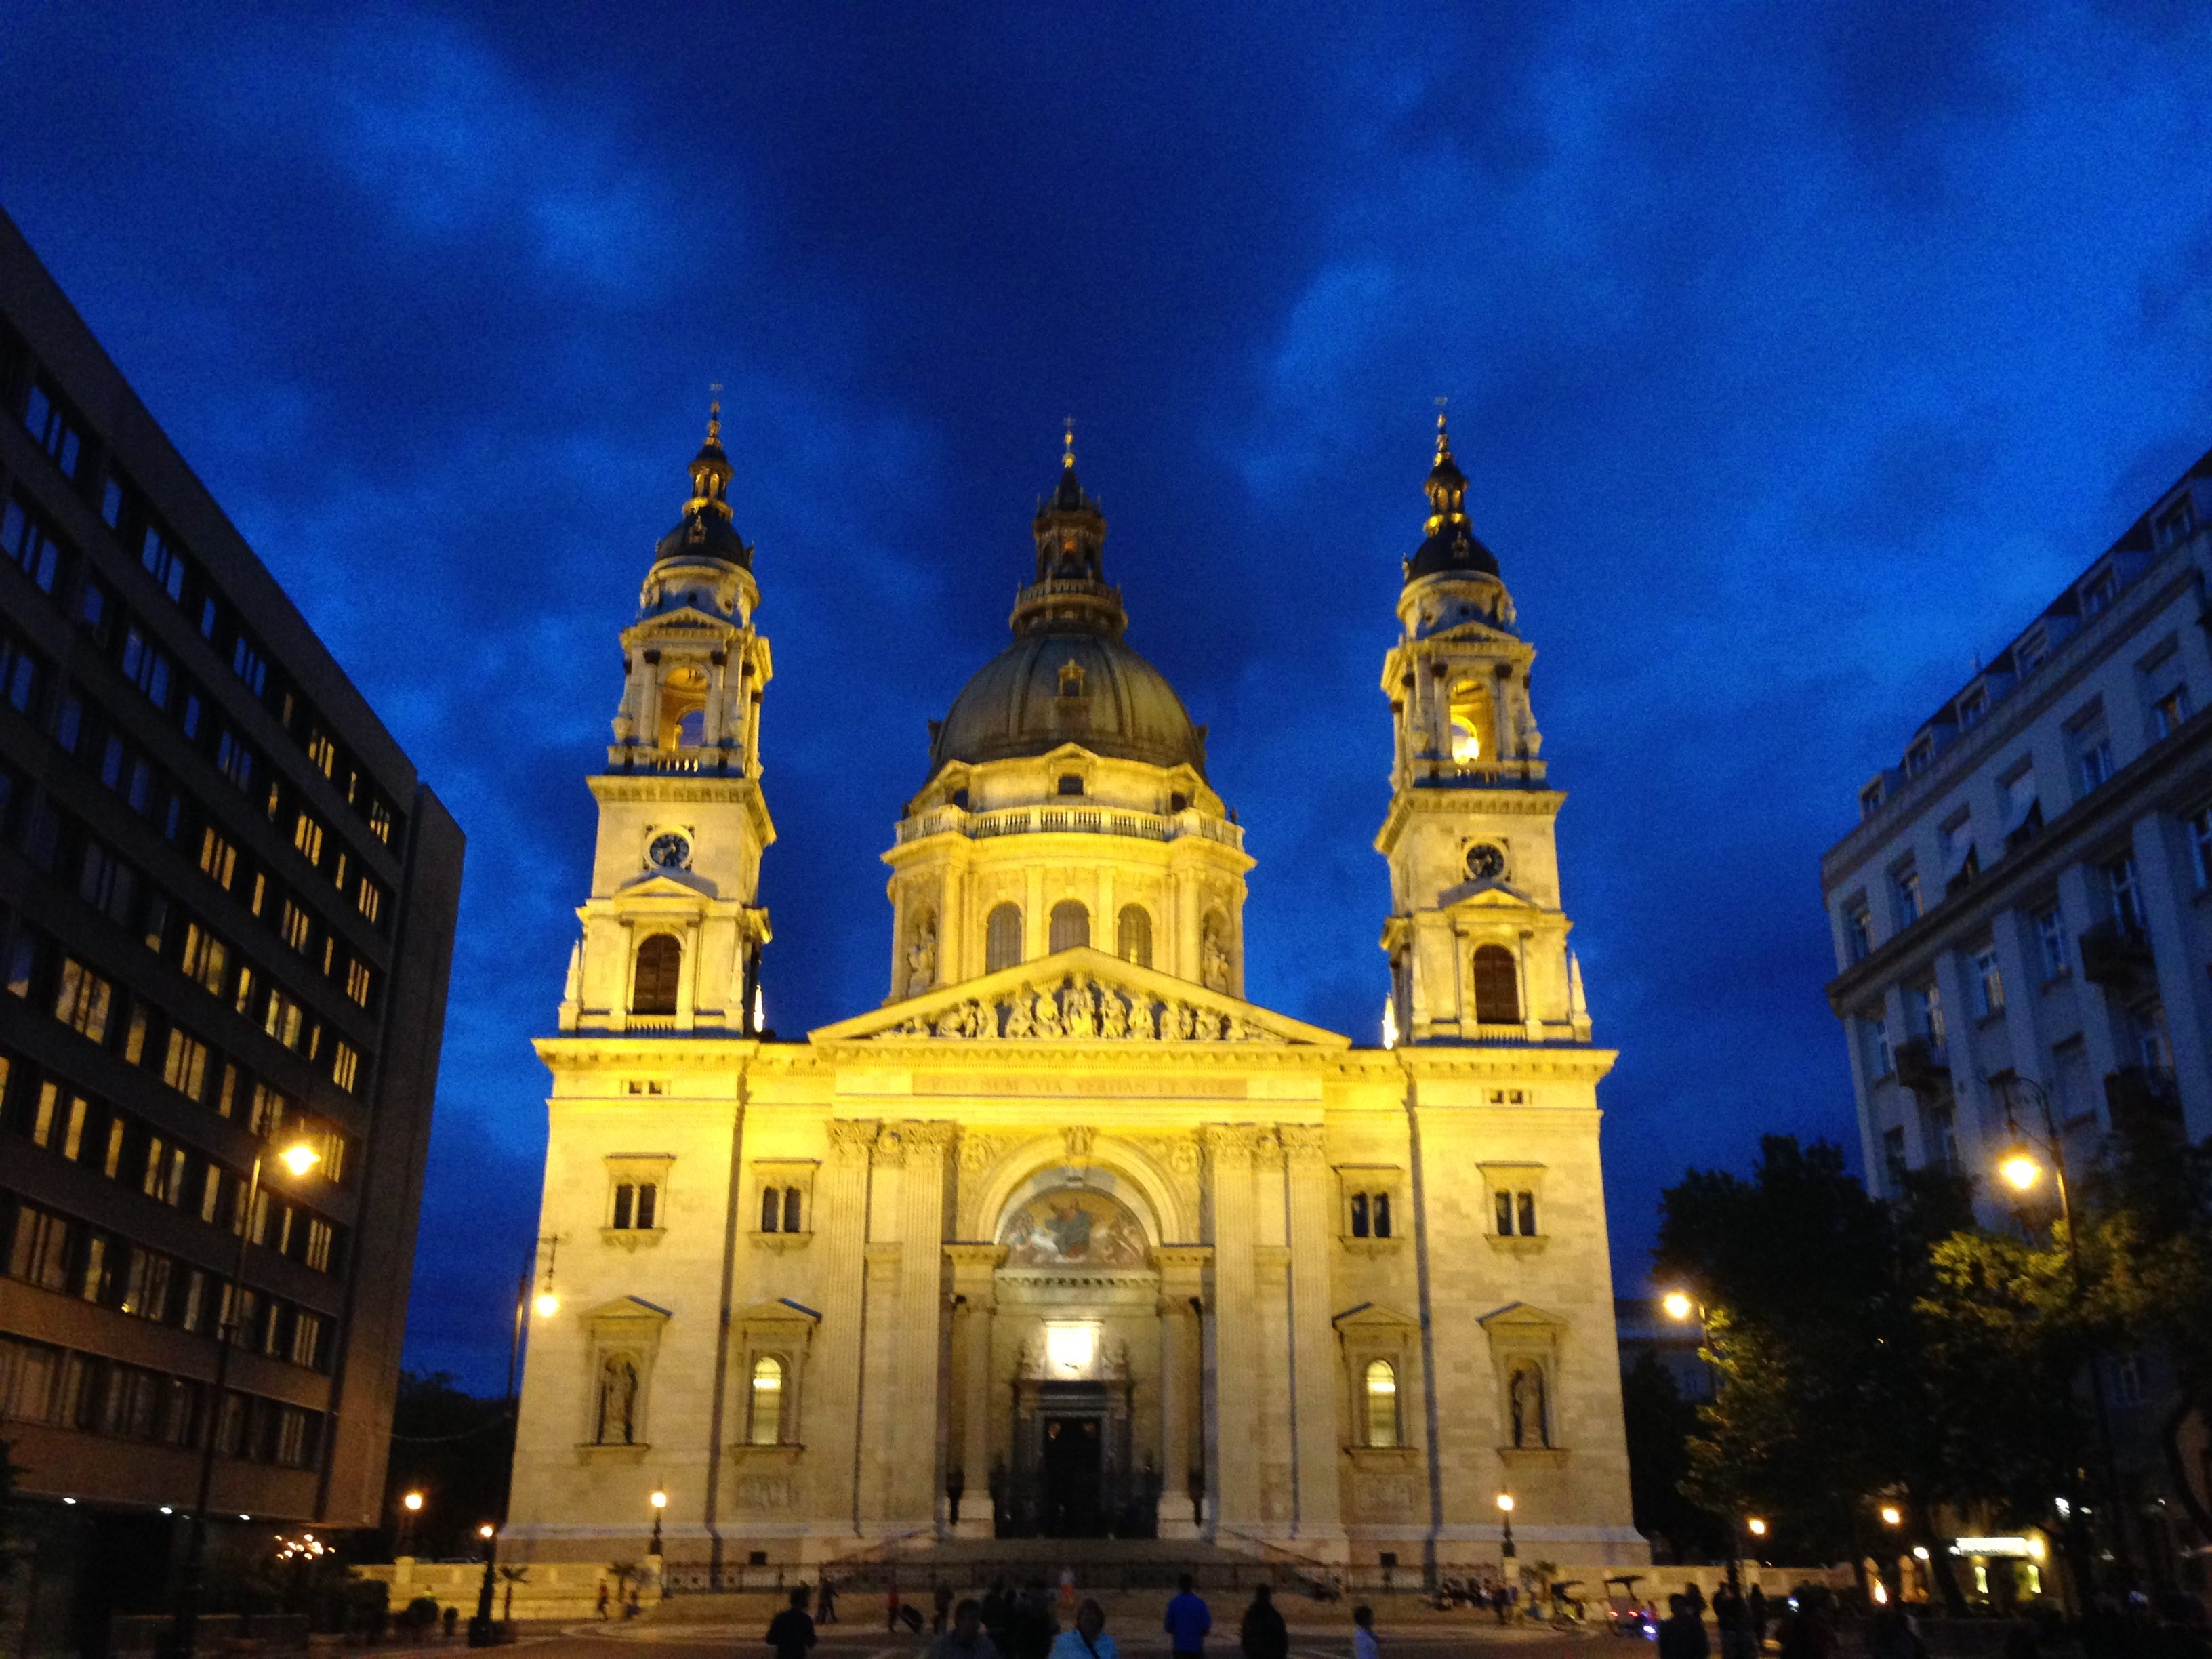 St. Stephen's Basilica, a proud symbol of Budapest looks spectacular both inside and outside.